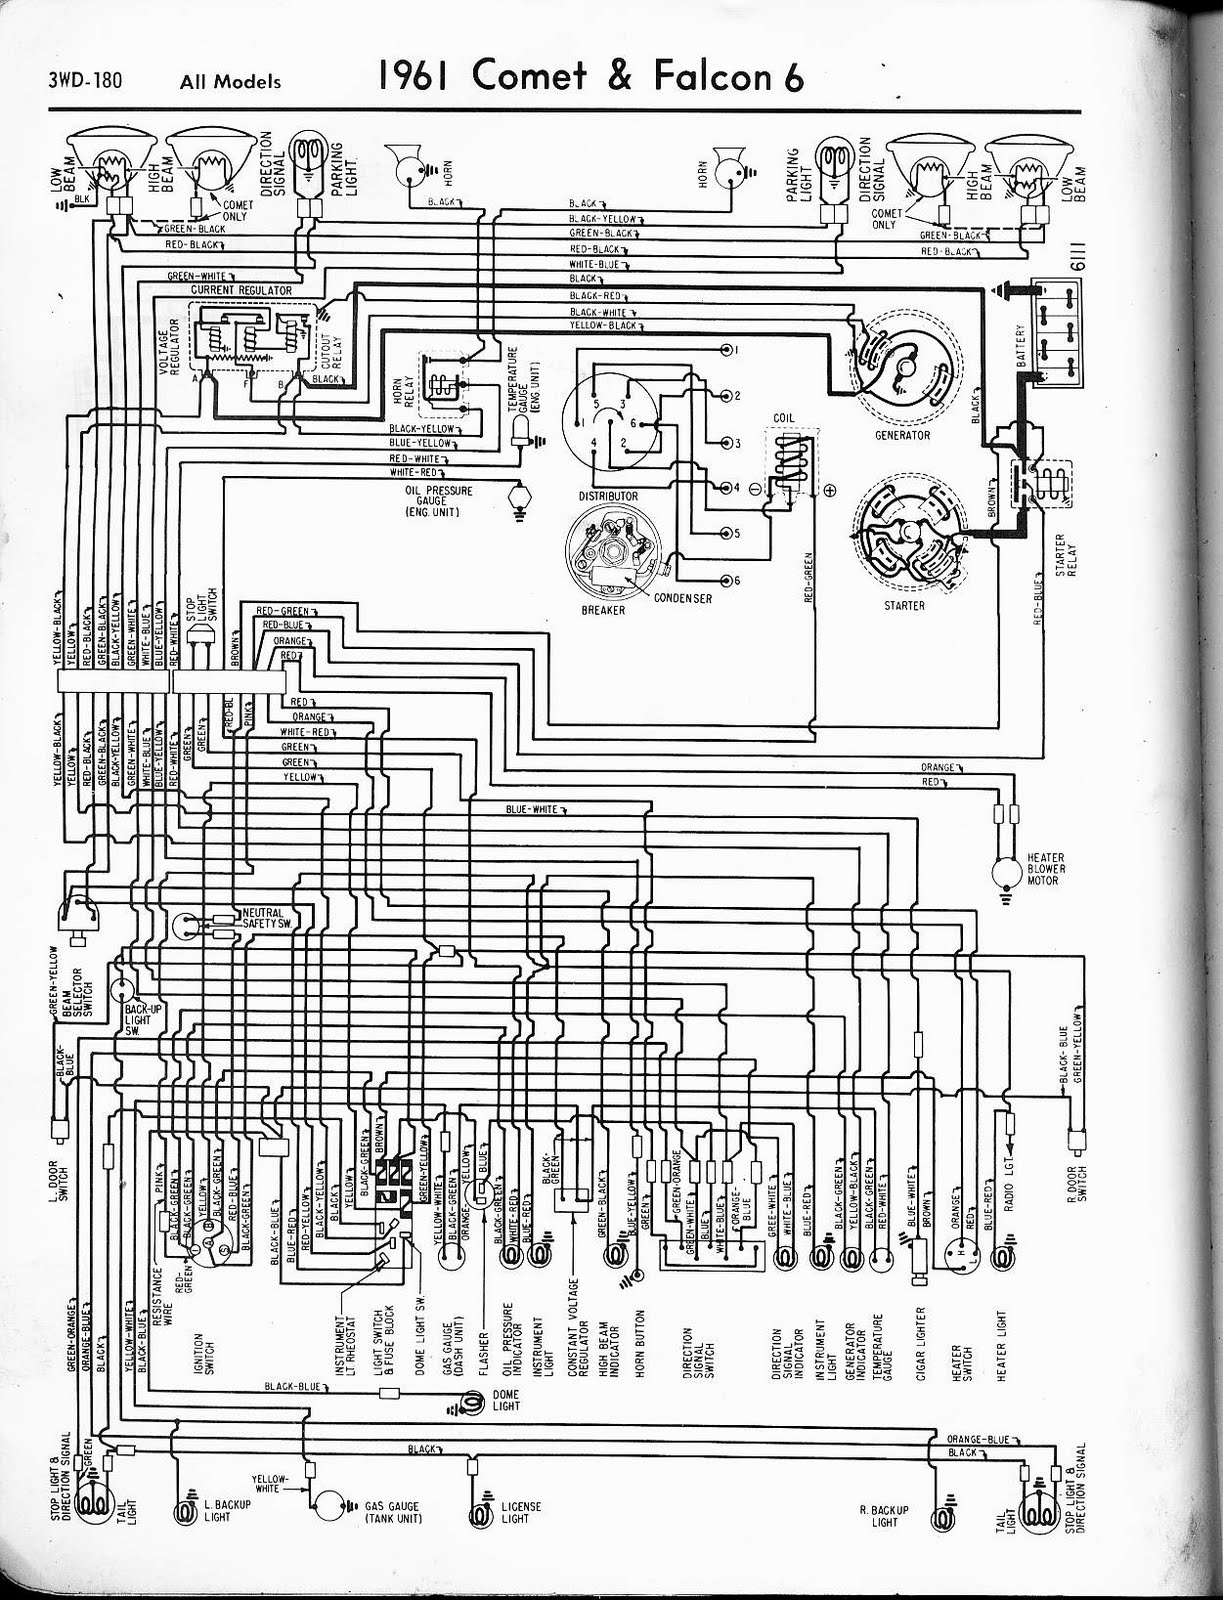 Schematic Diagram Wiring Diagram Of 1961 Ford Falcon